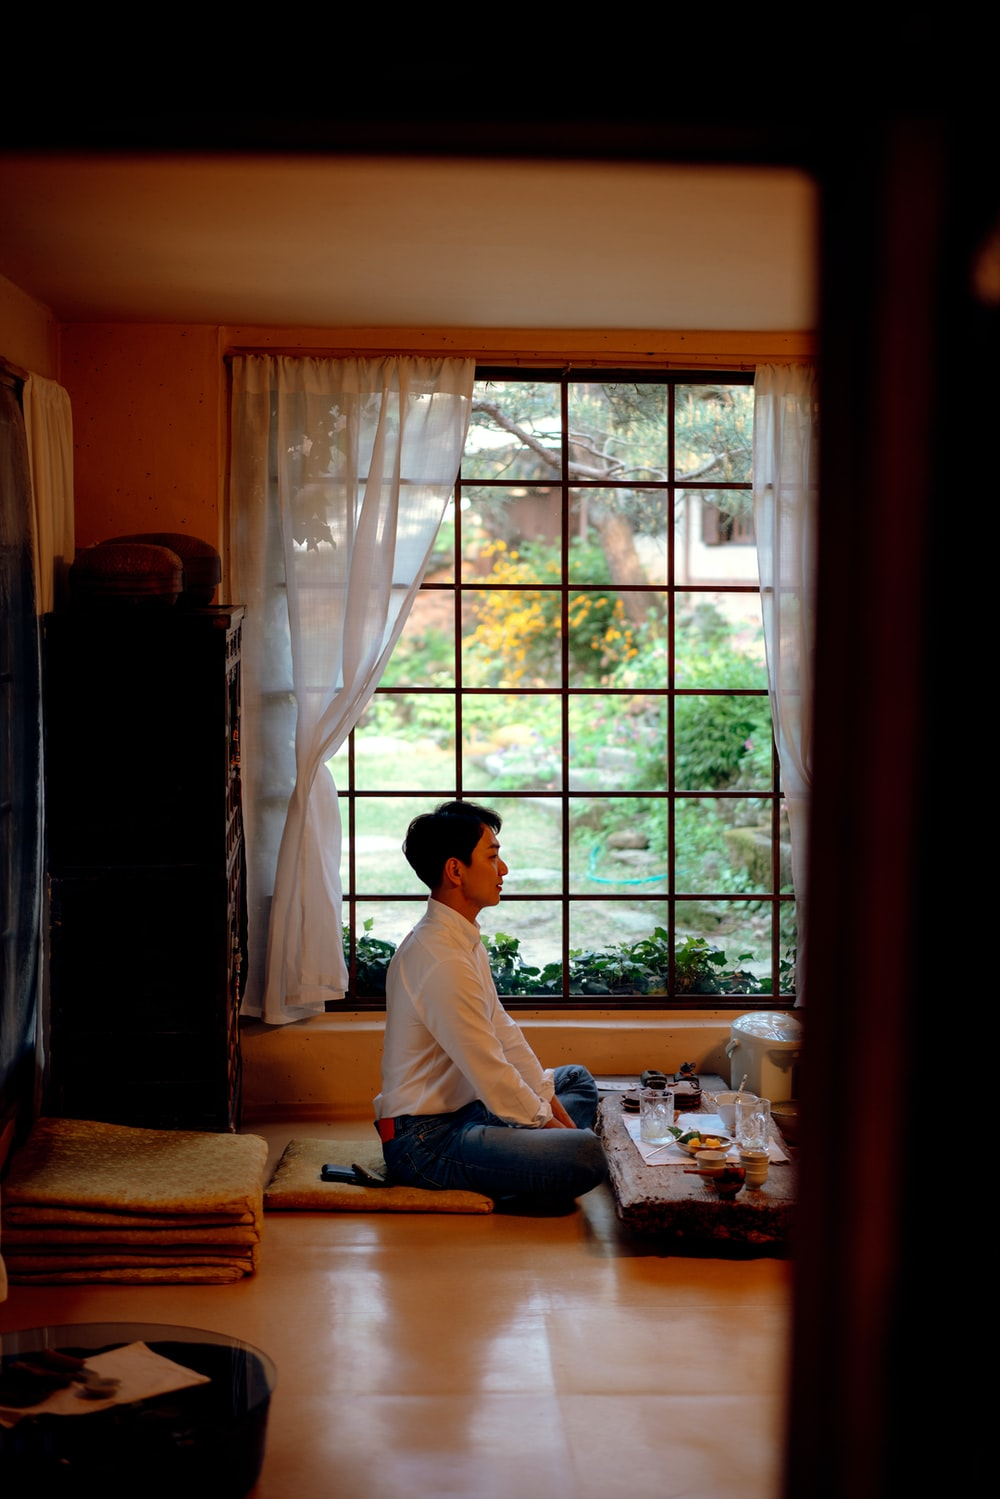 man sitting on floor by table and window